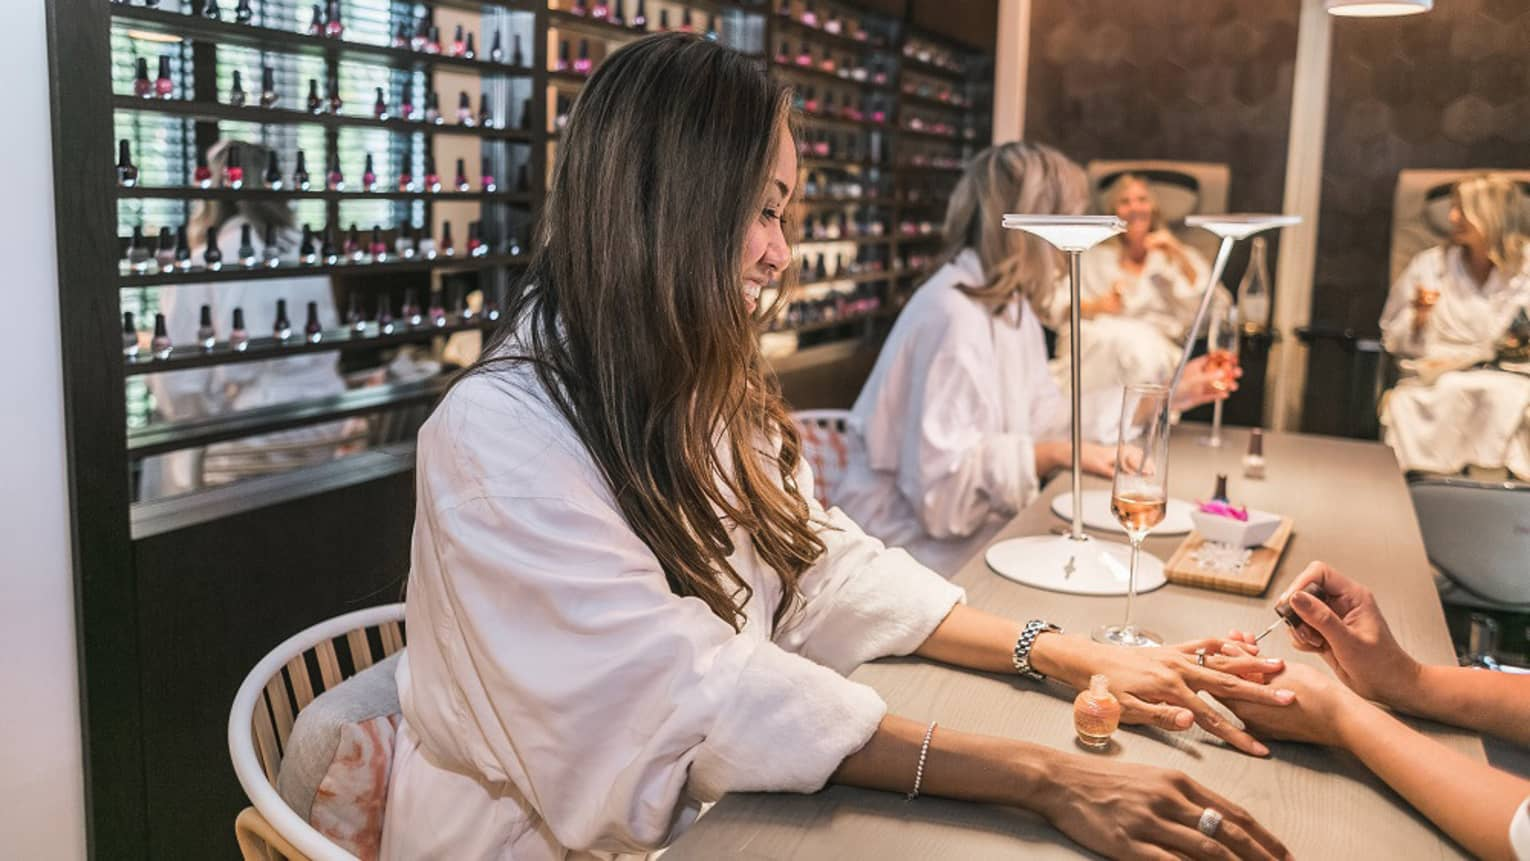 Women in white bathrobes sit at table, get manicures at Driftwood Spa